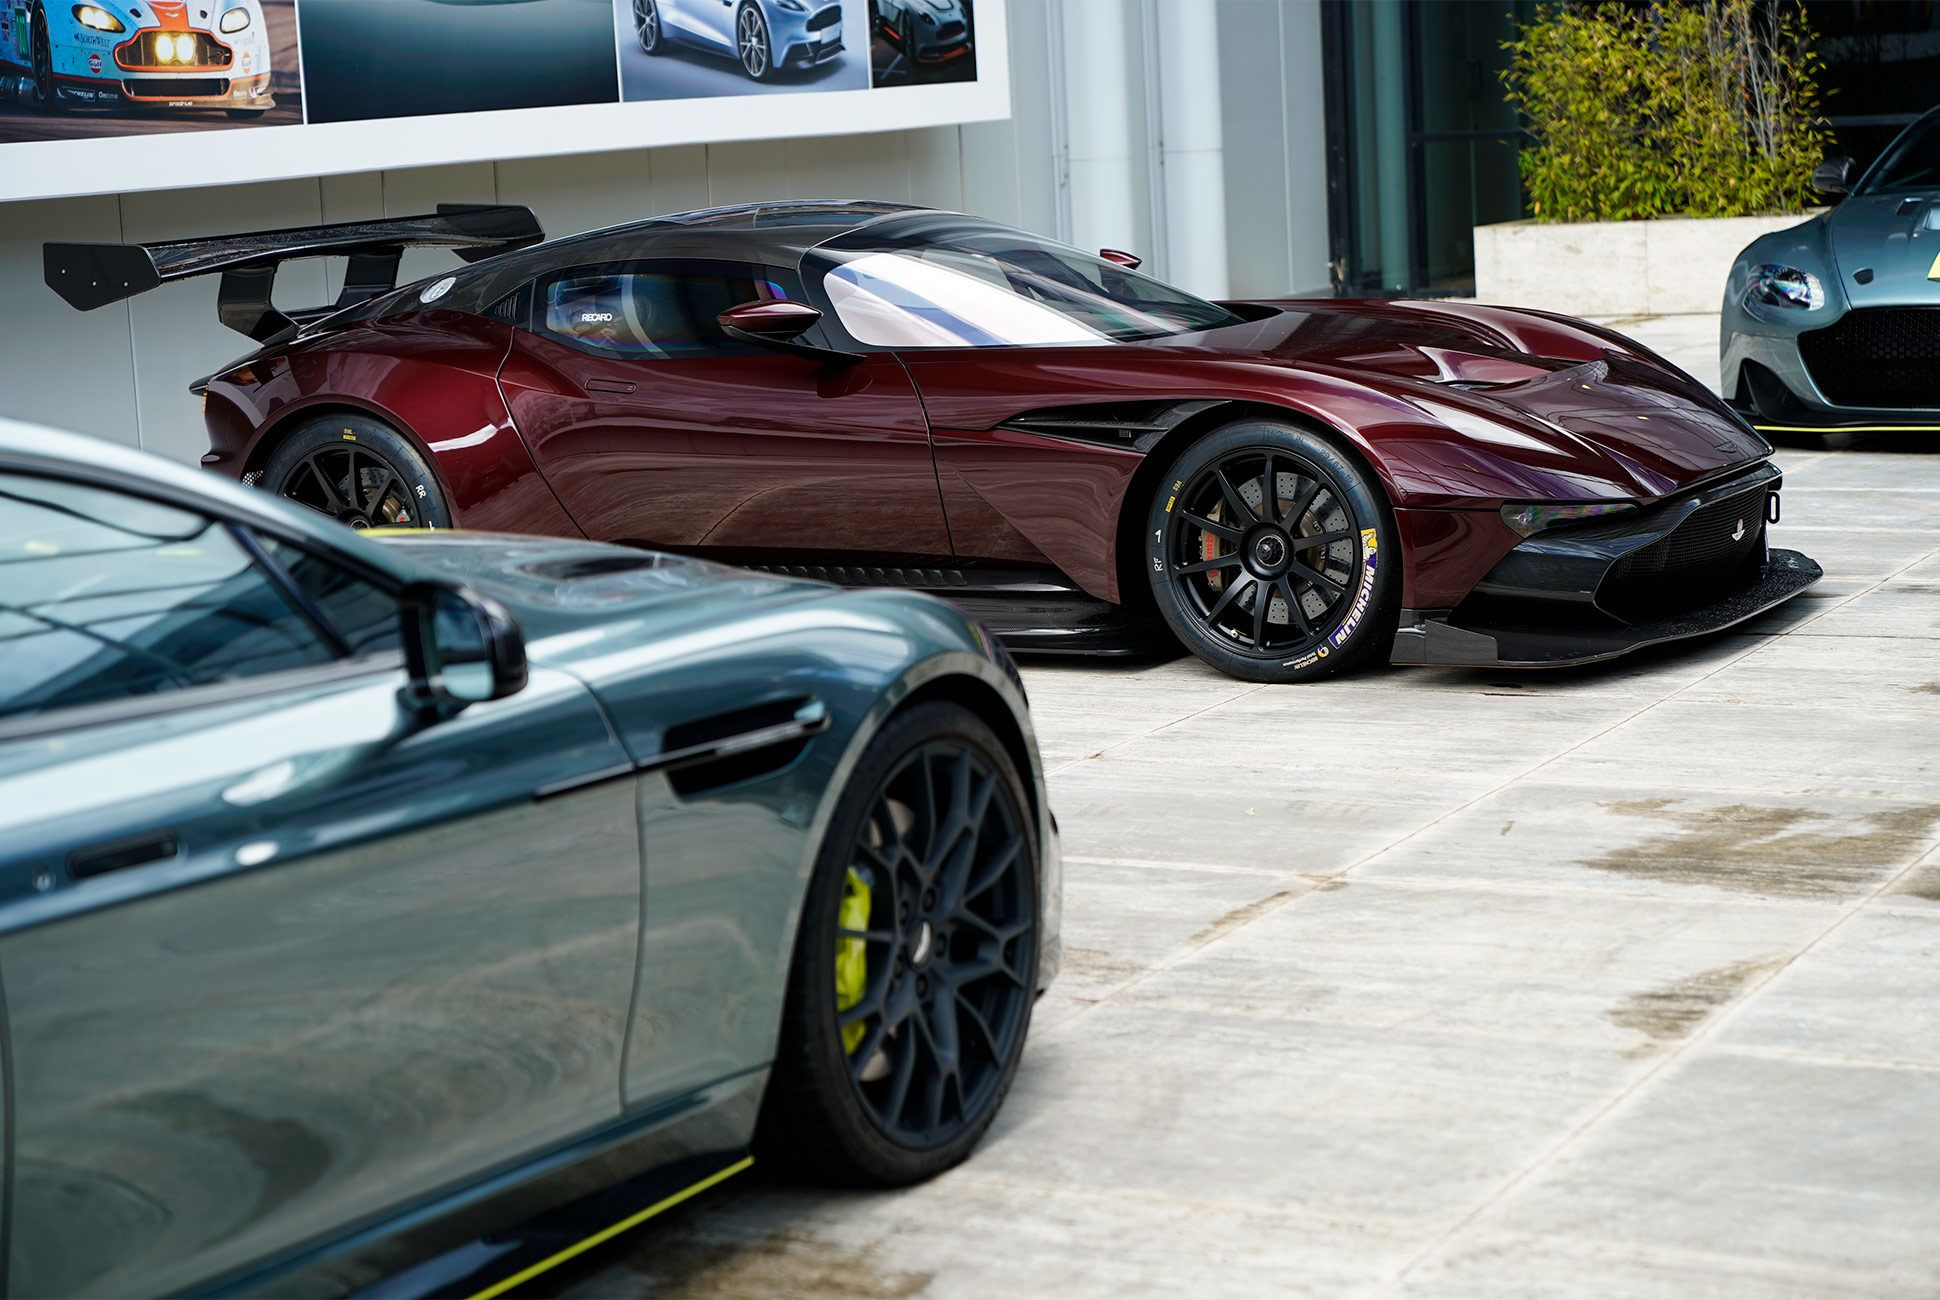 Visual Proof That Aston Martin Makes The Most Beautiful Cars In